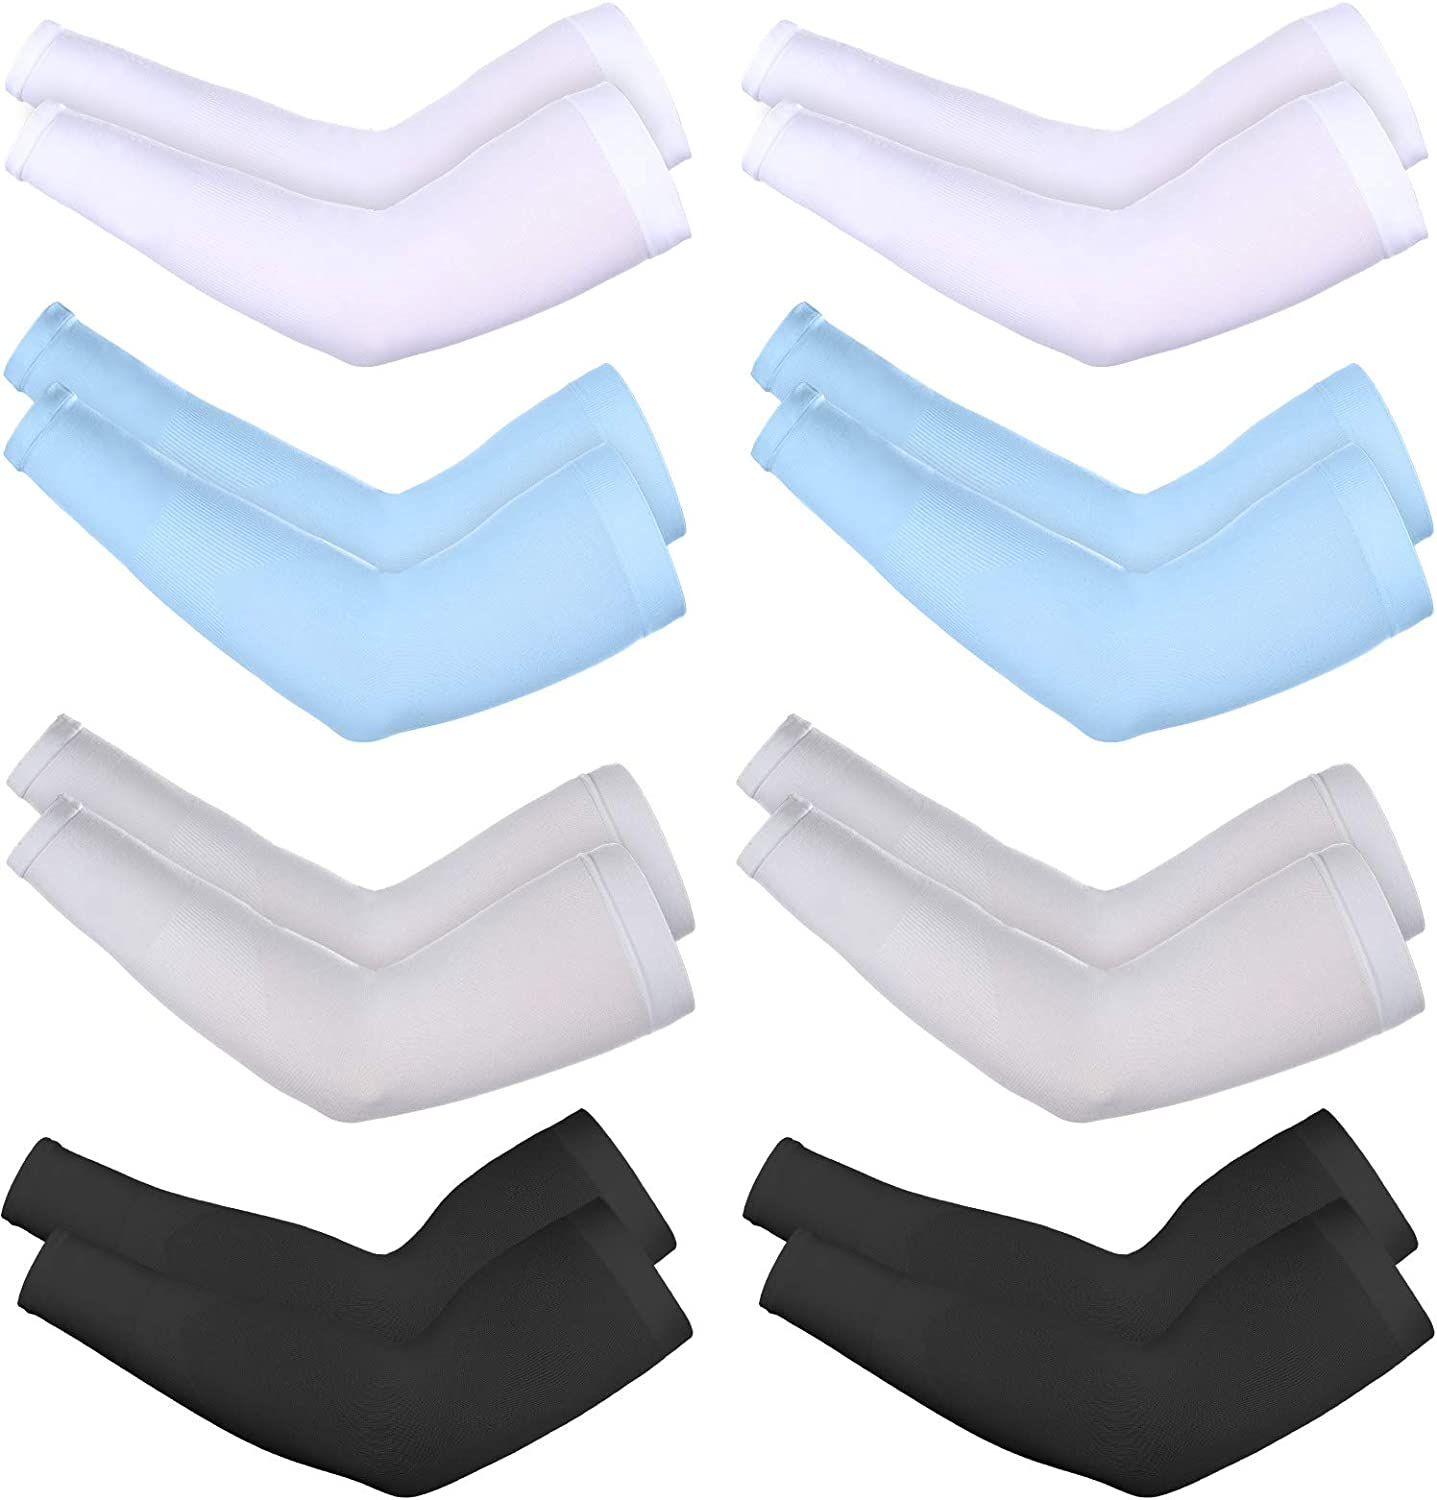 8 Pairs Unisex Arm Sleeves Sun Protection Cooling Sleeves for Driving Jogging Golfing Riding Outdoor Activities